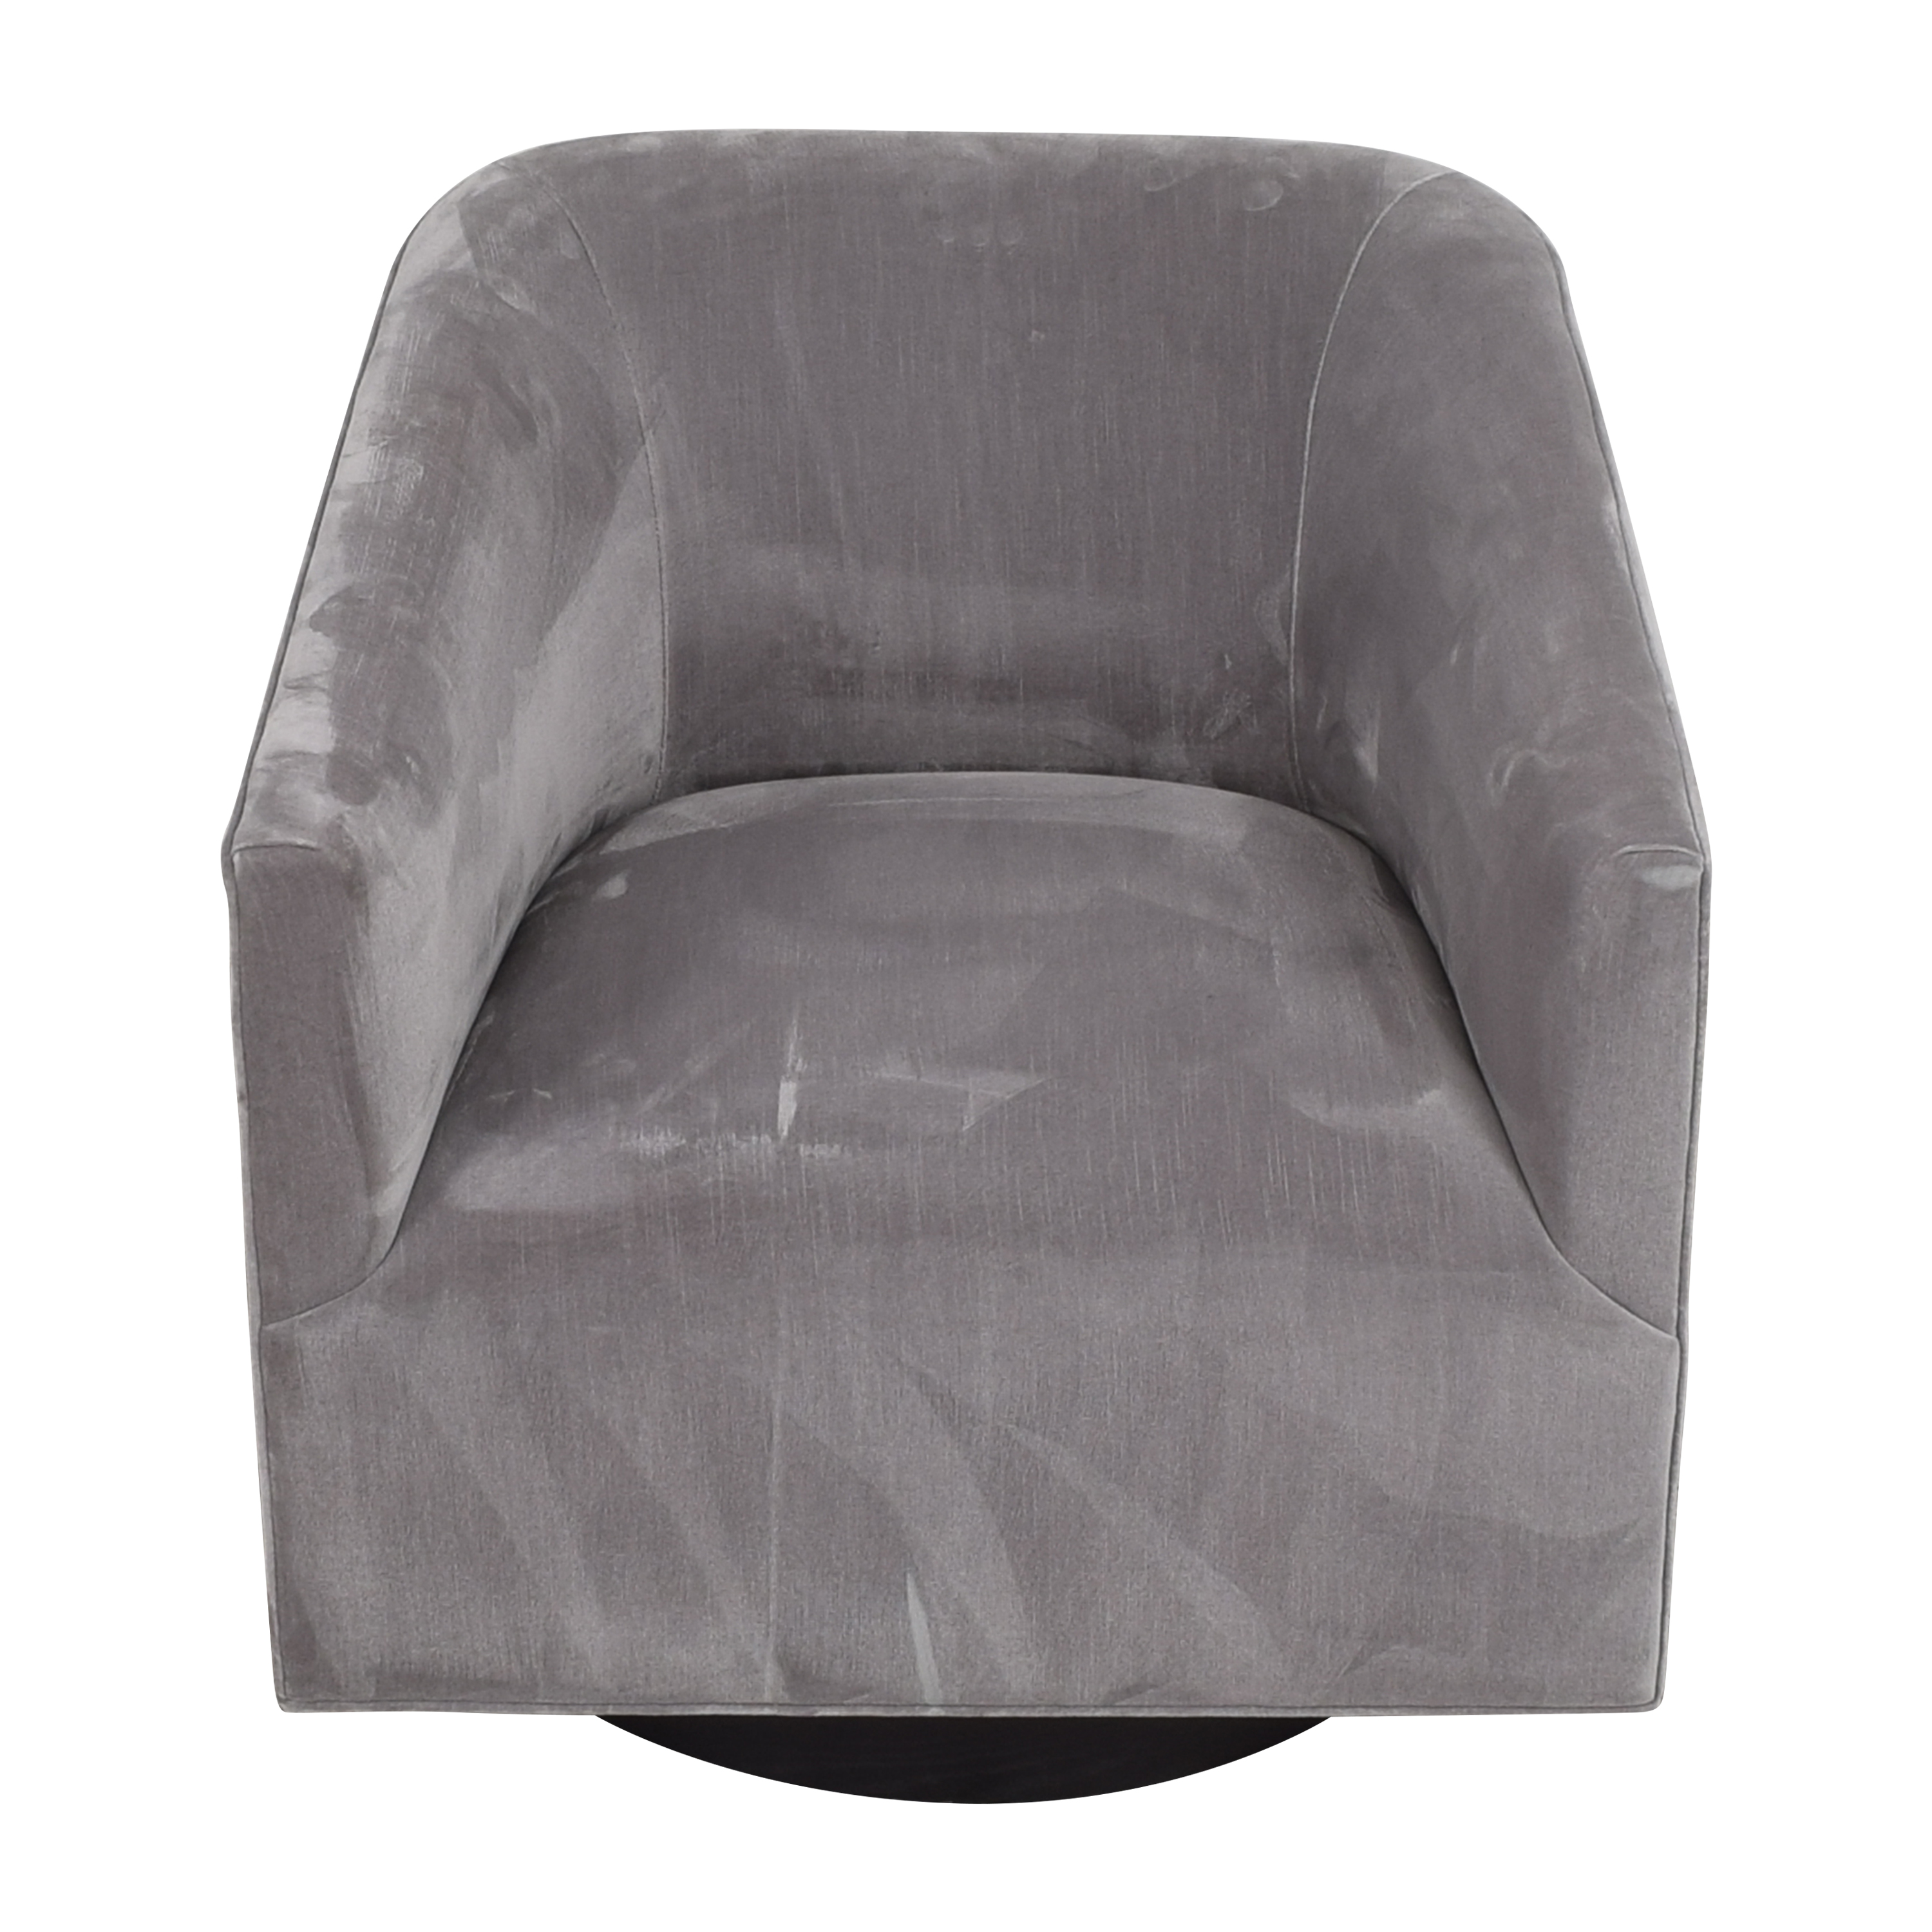 Restoration Hardware Restoration Hardware 1950s Italian Shelter Arm Swivel Chair coupon